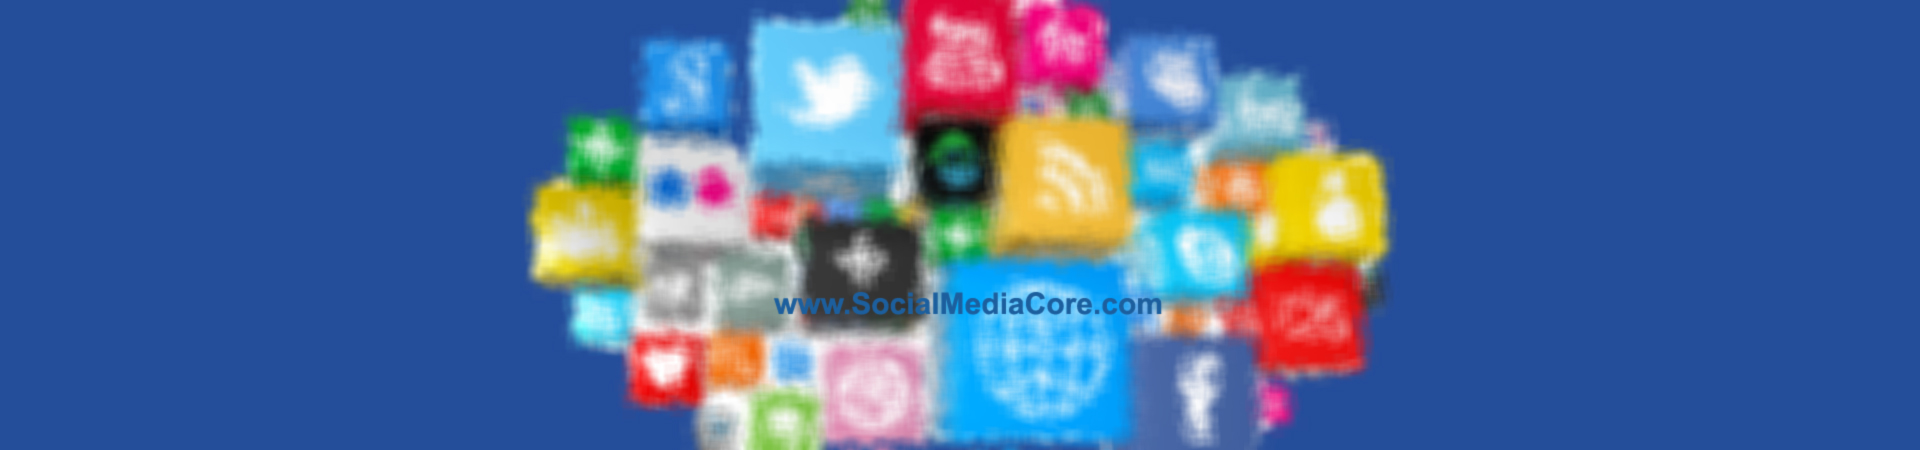 social-media-core-homepage-slide-blue